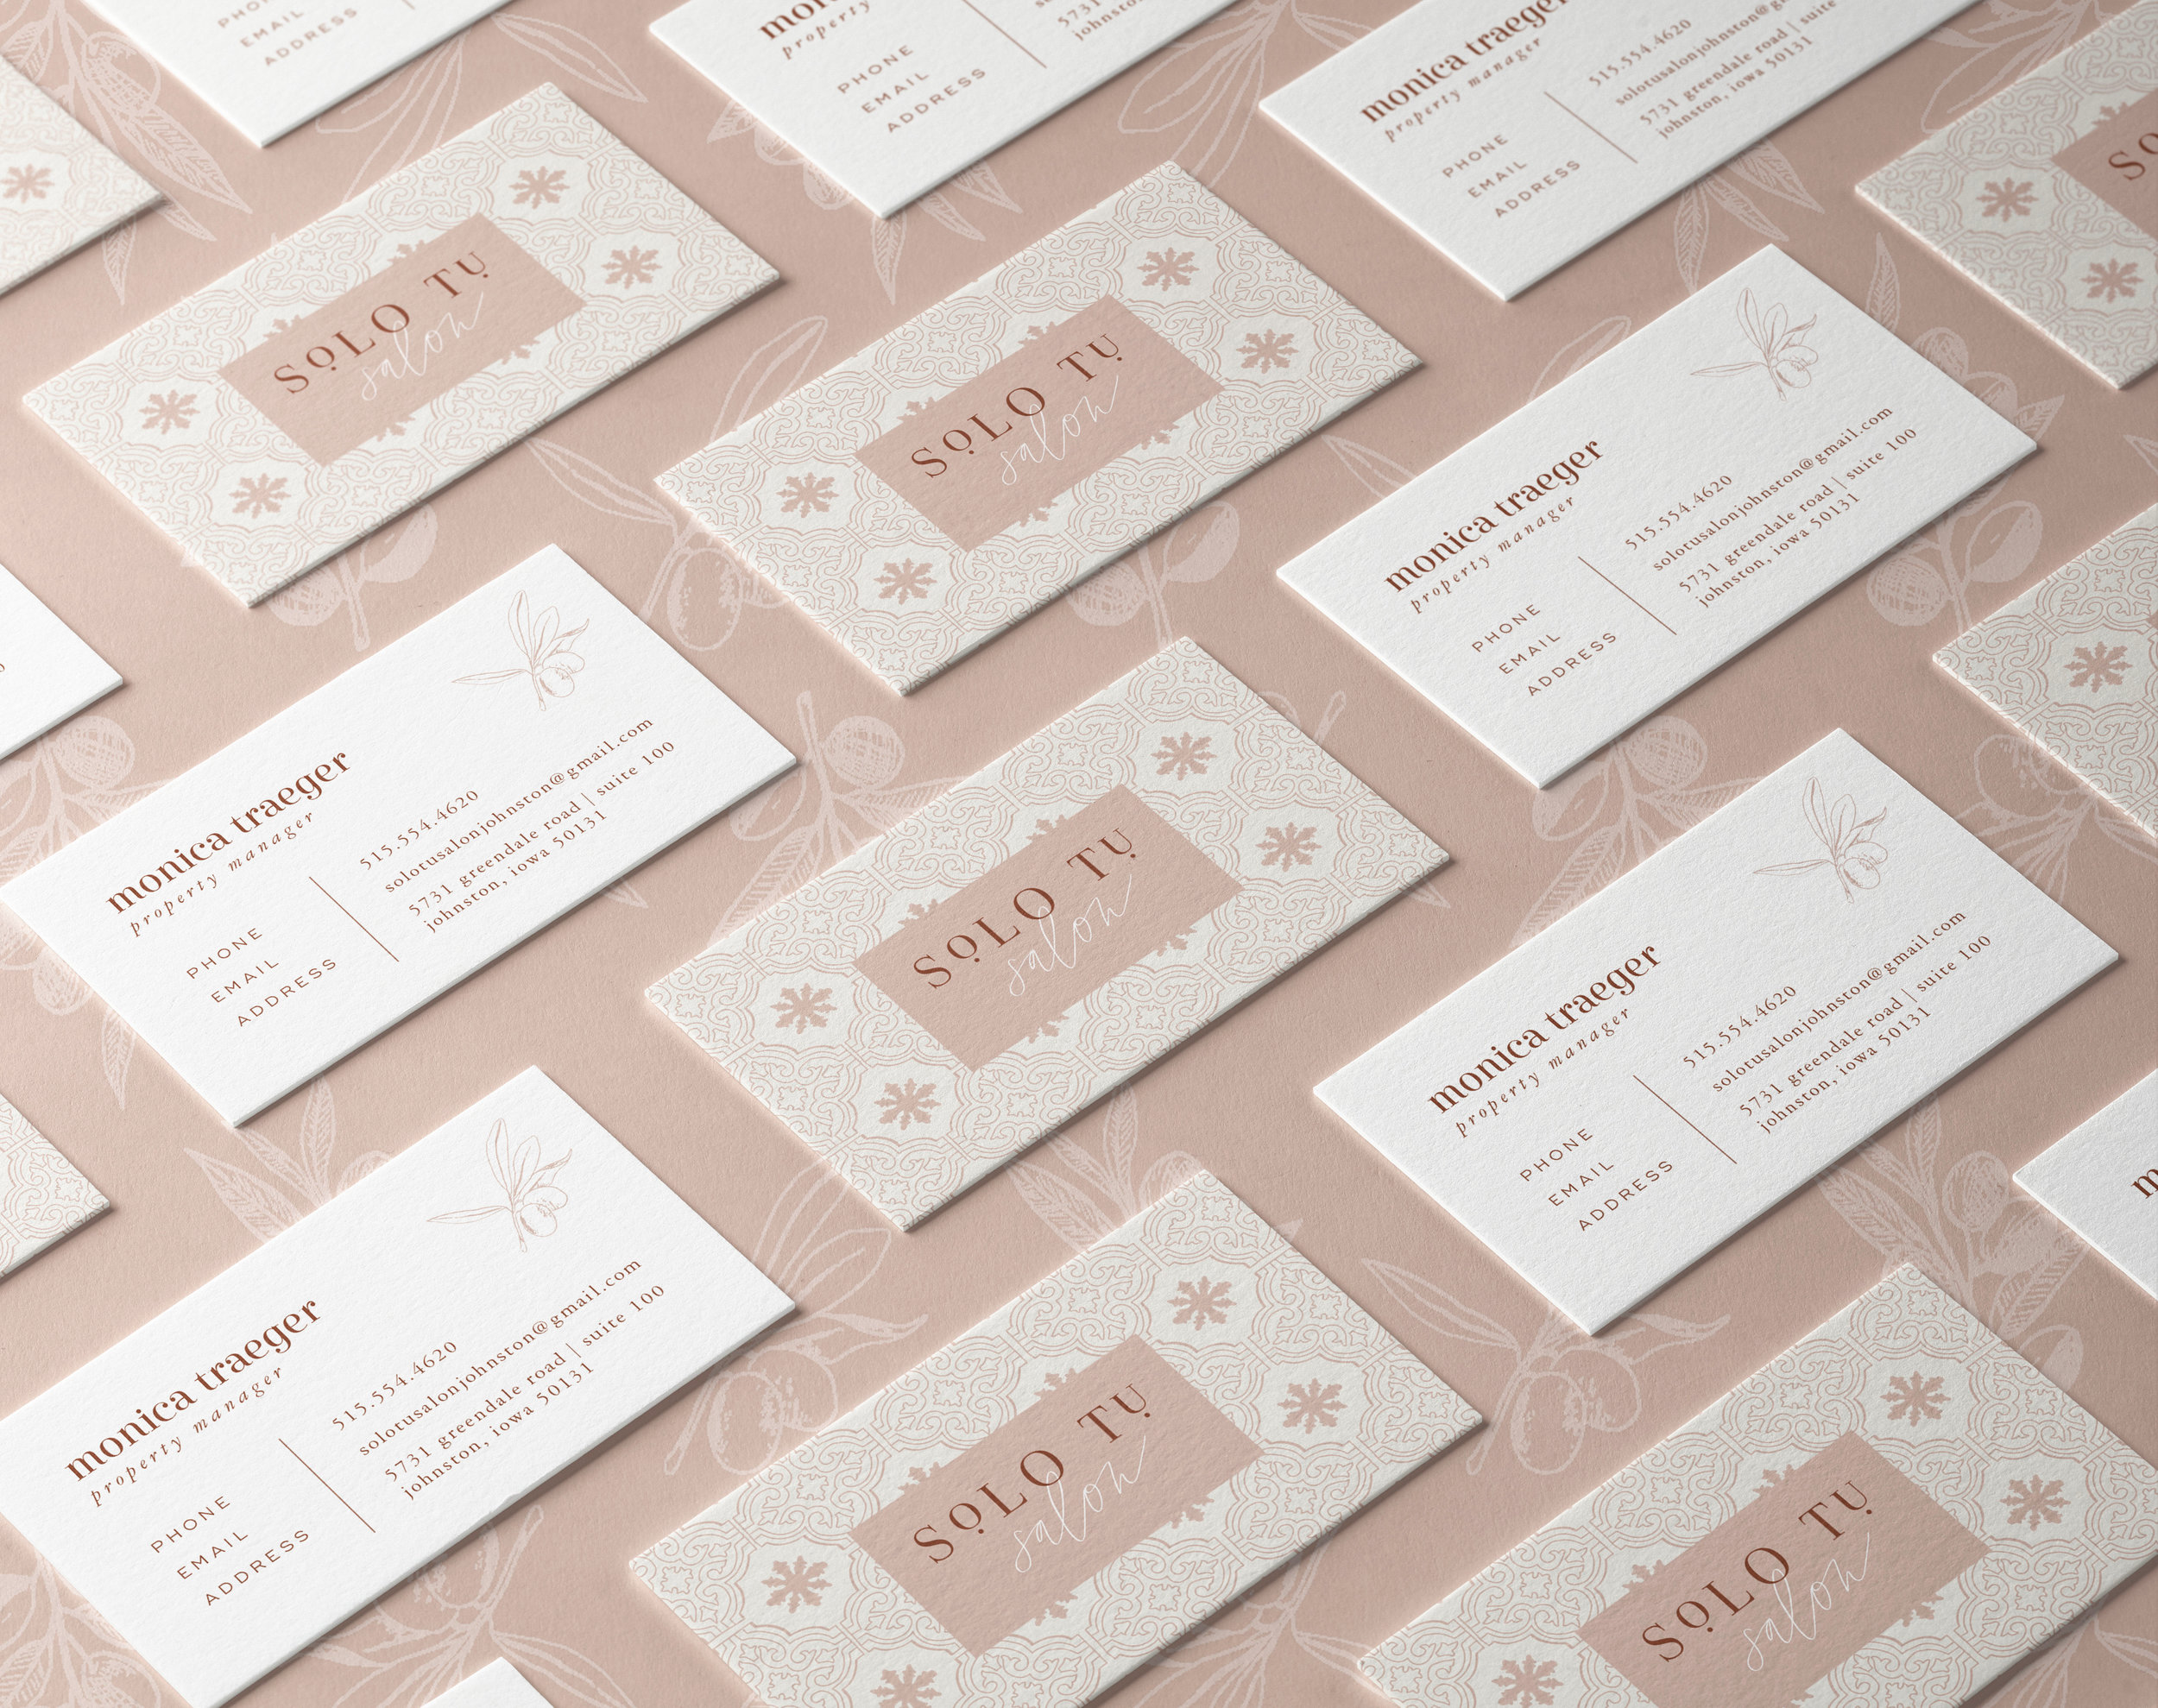 SoloTu+Salon+BusinessCards+GraphicDesign.jpg